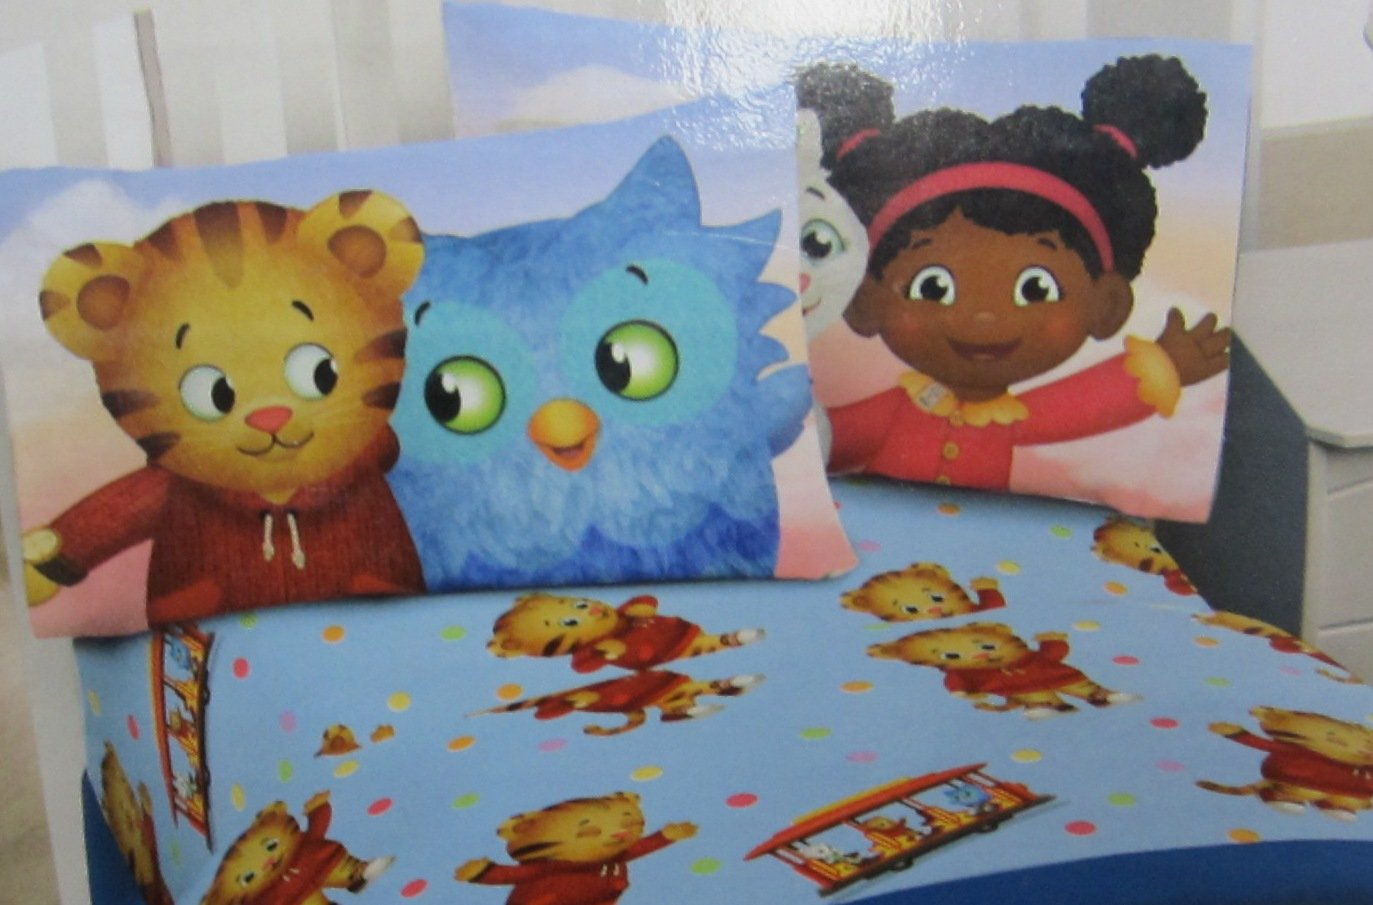 Daniel Tiger Neighborhood Friends Action Figures Set